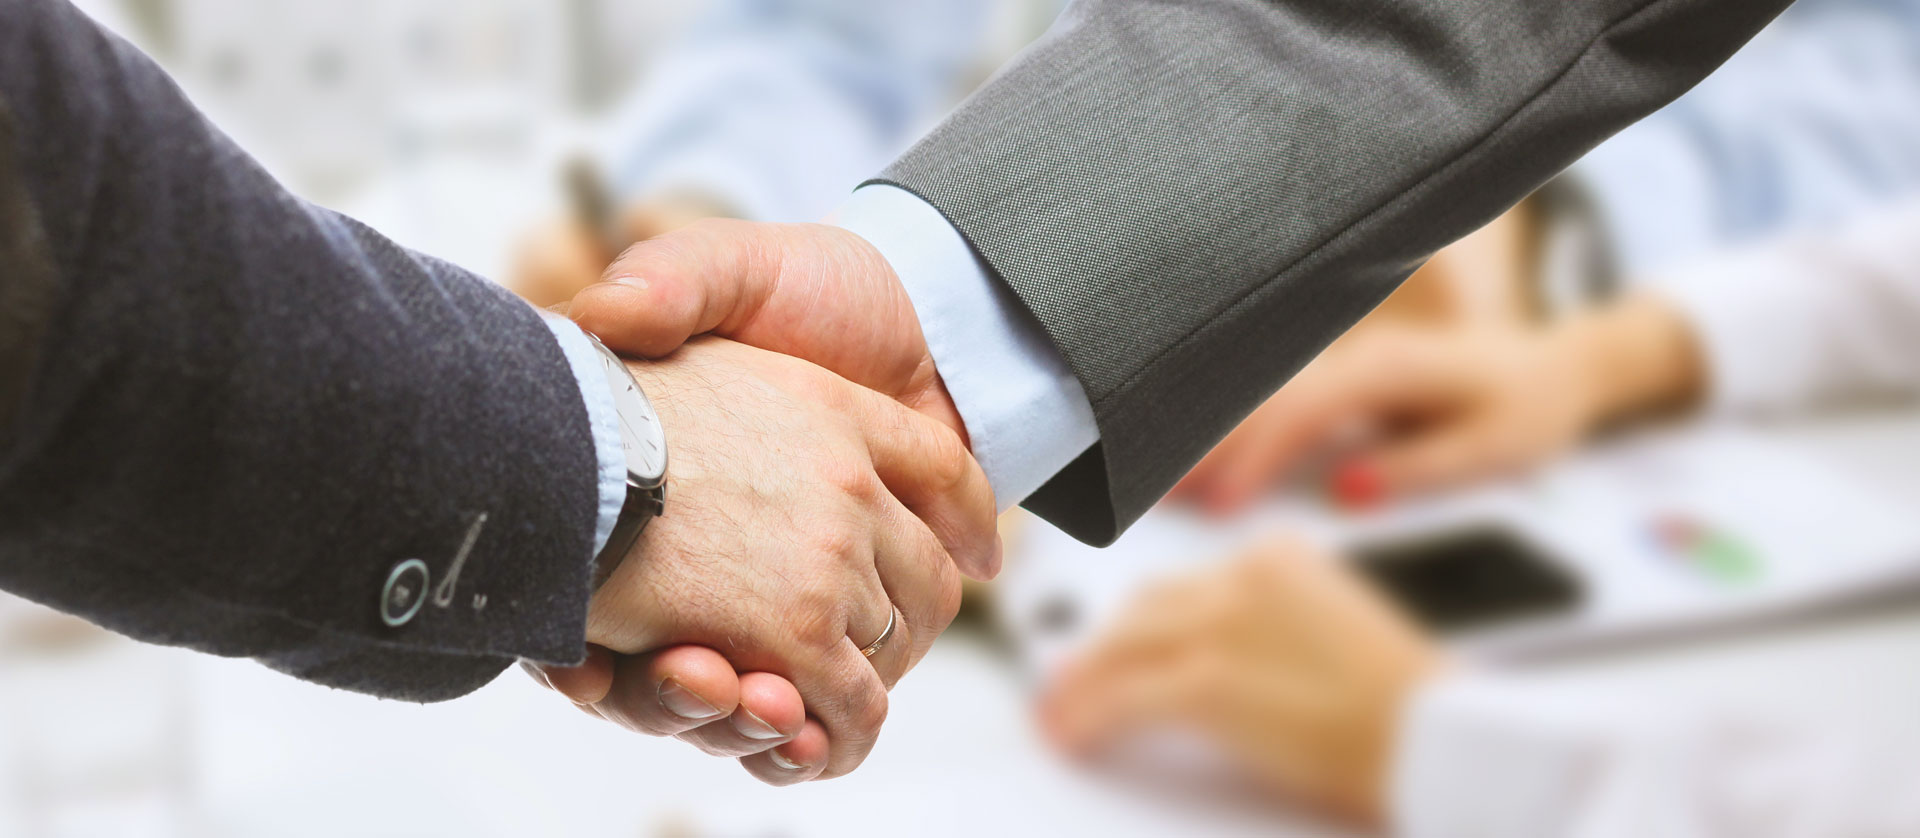 close up of two businessmen shaking hands in a meeting setting